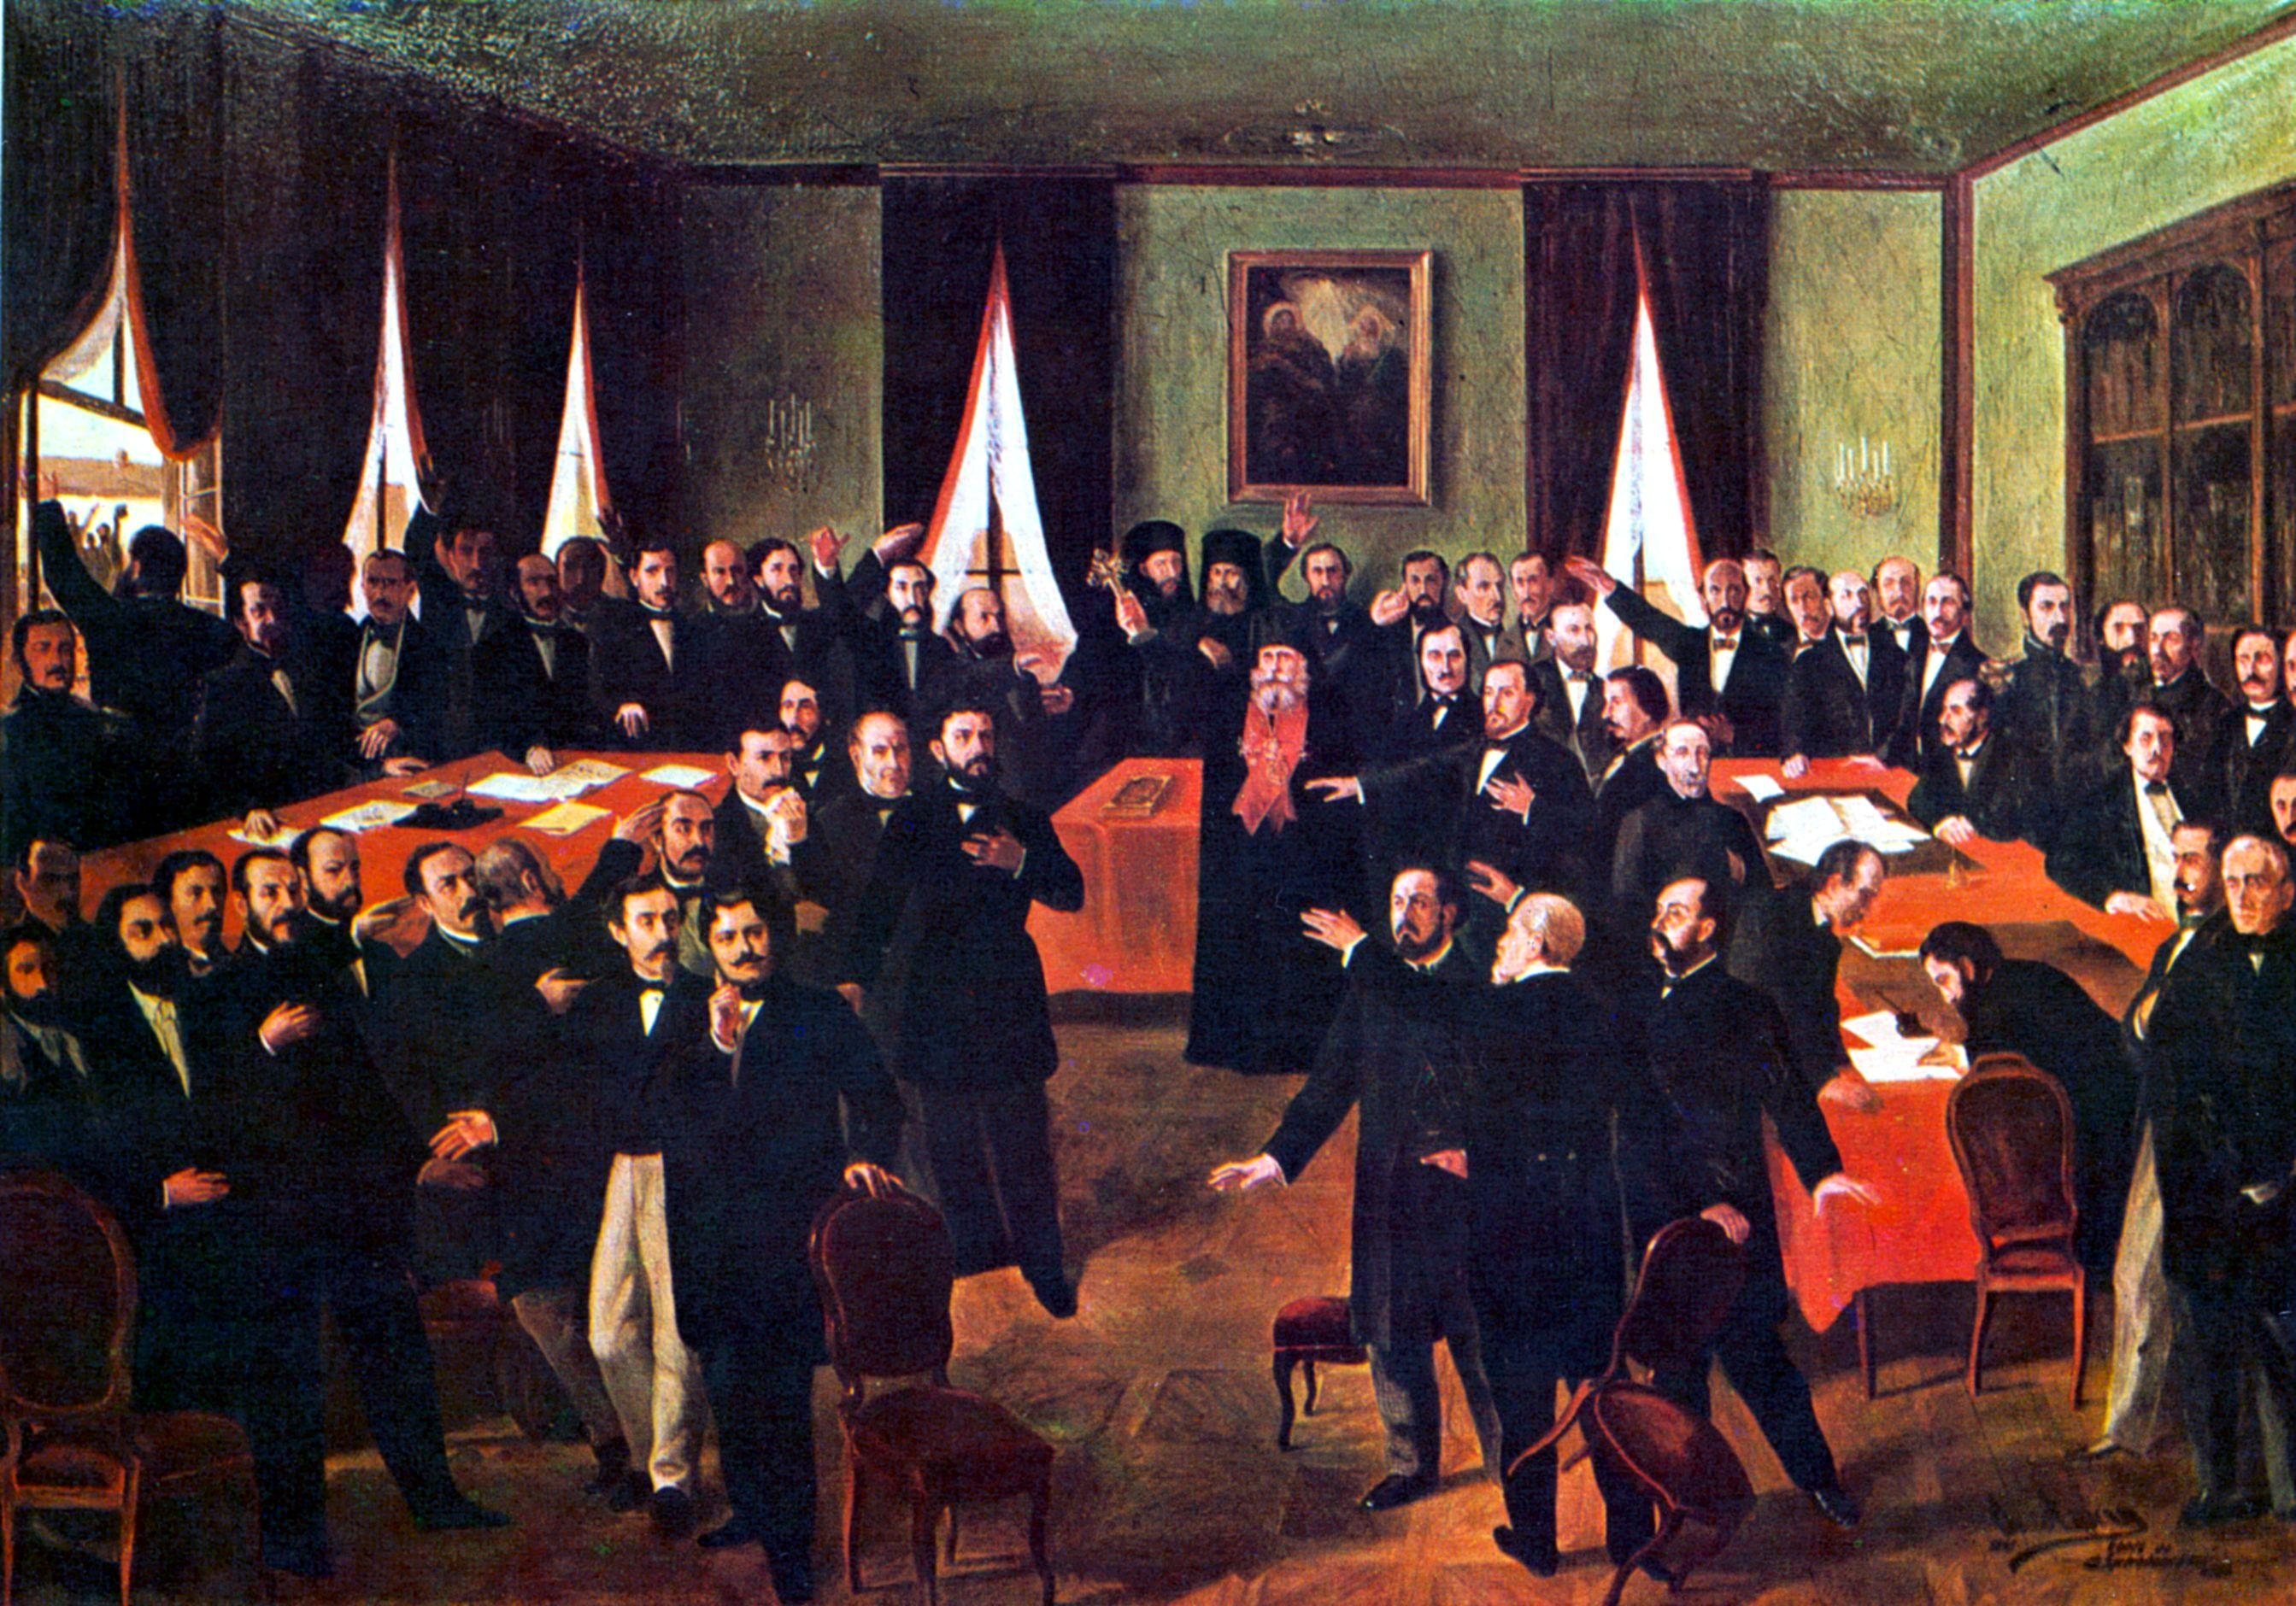 Proclaiming the Union, 1861